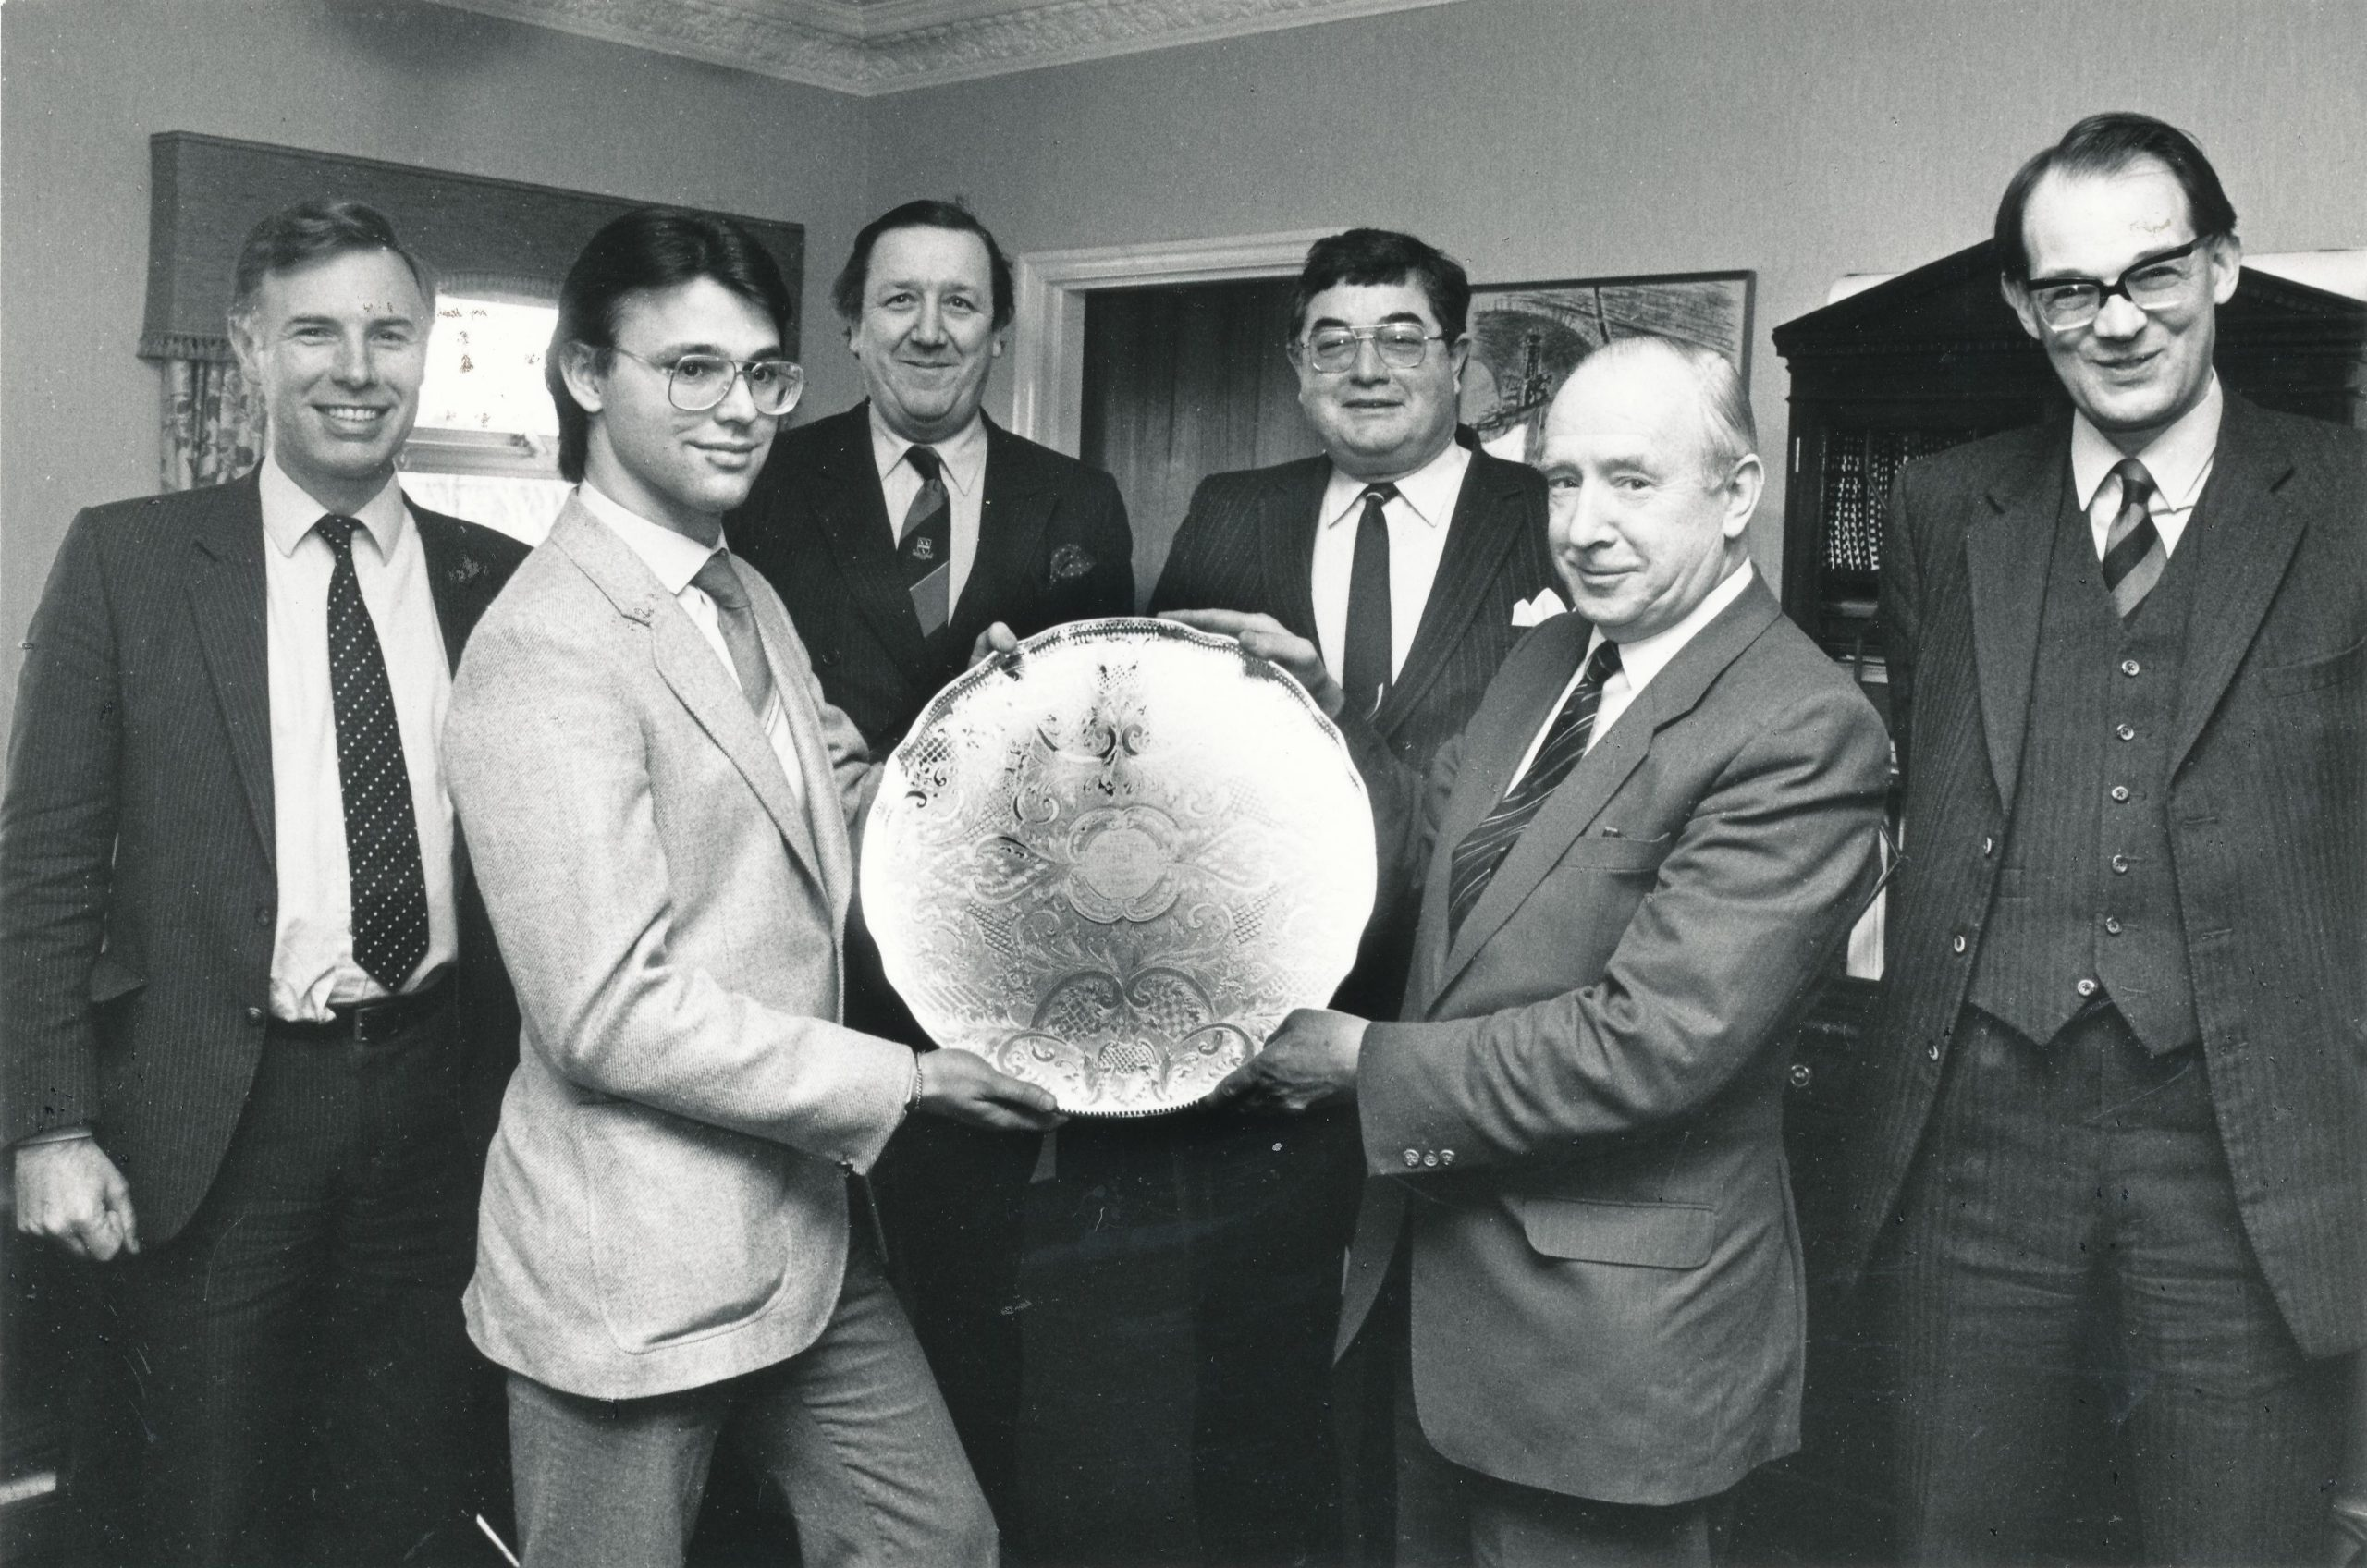 Jim accepts the 1981 Grand Prix shield from David Anderton OBE